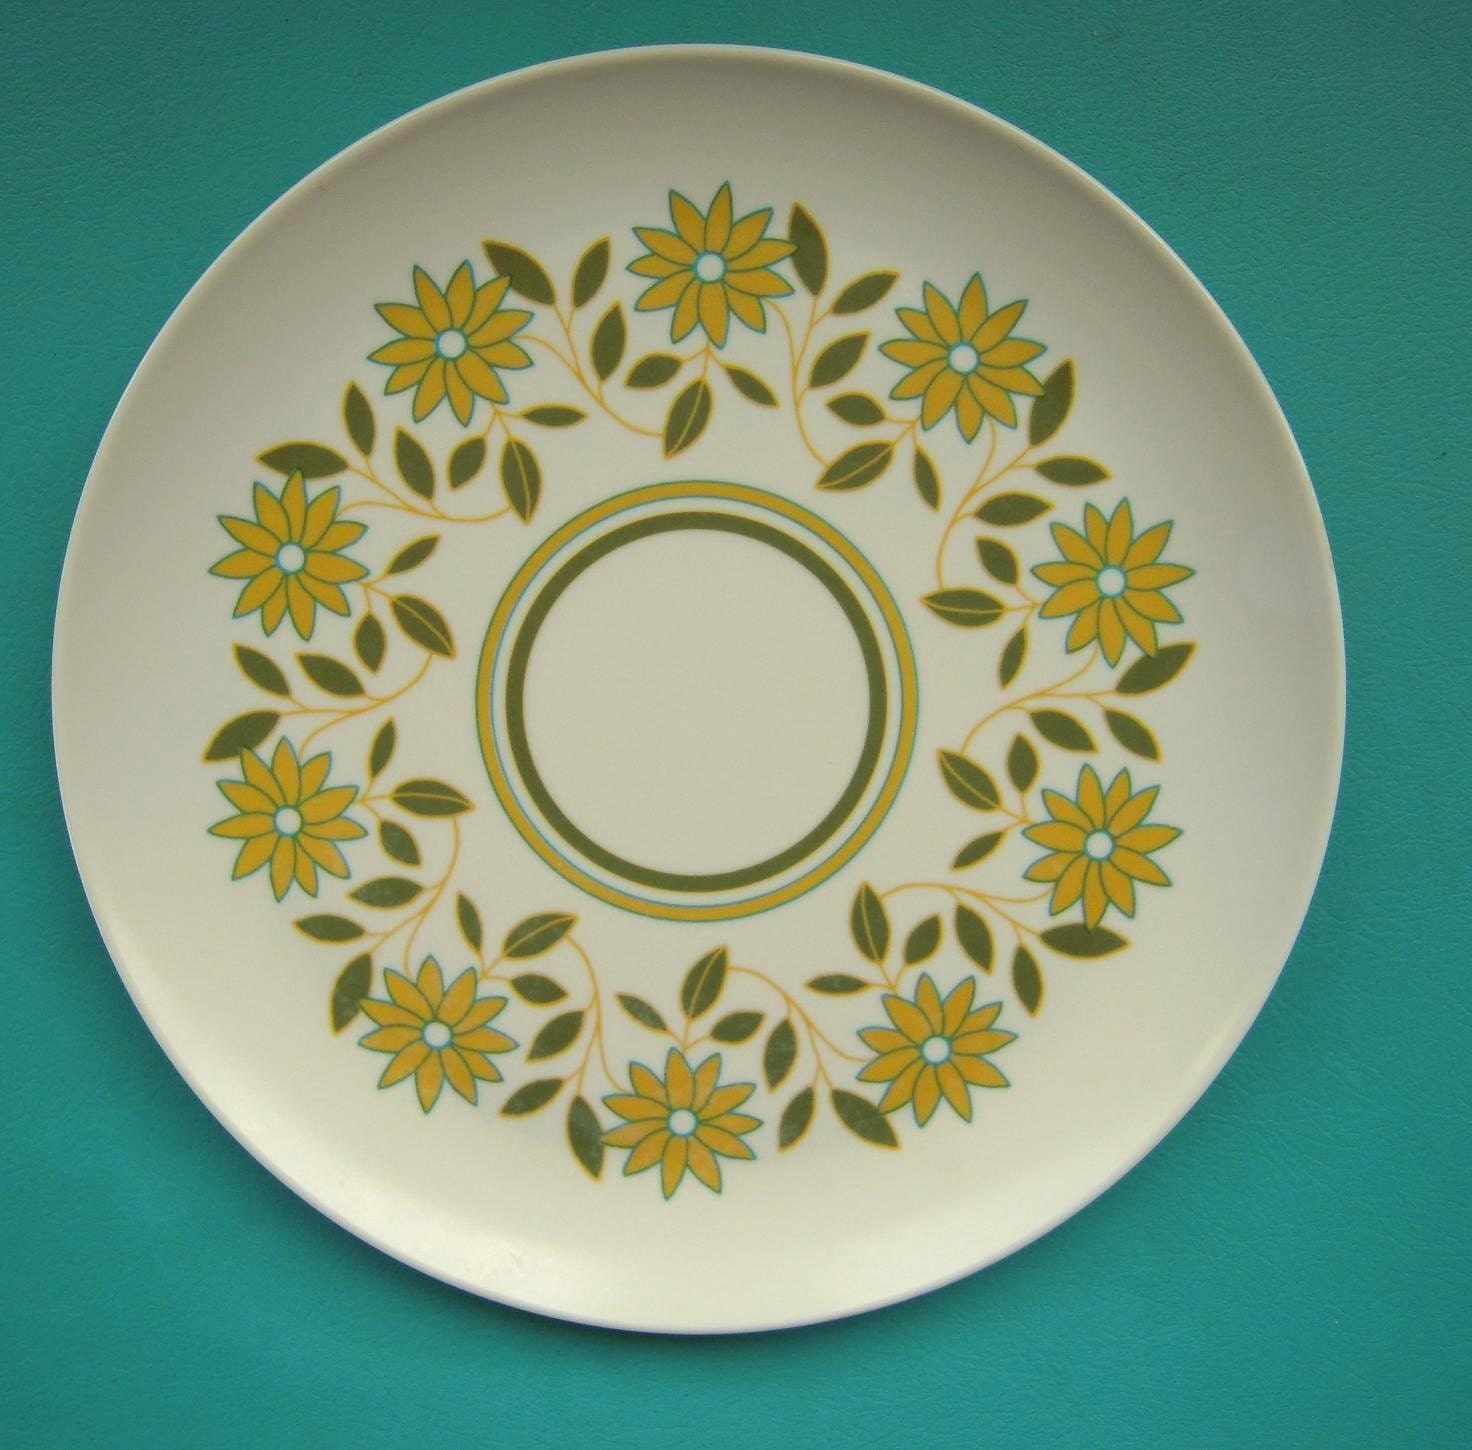 adorable melmac plates, perfect for a summer table setting!